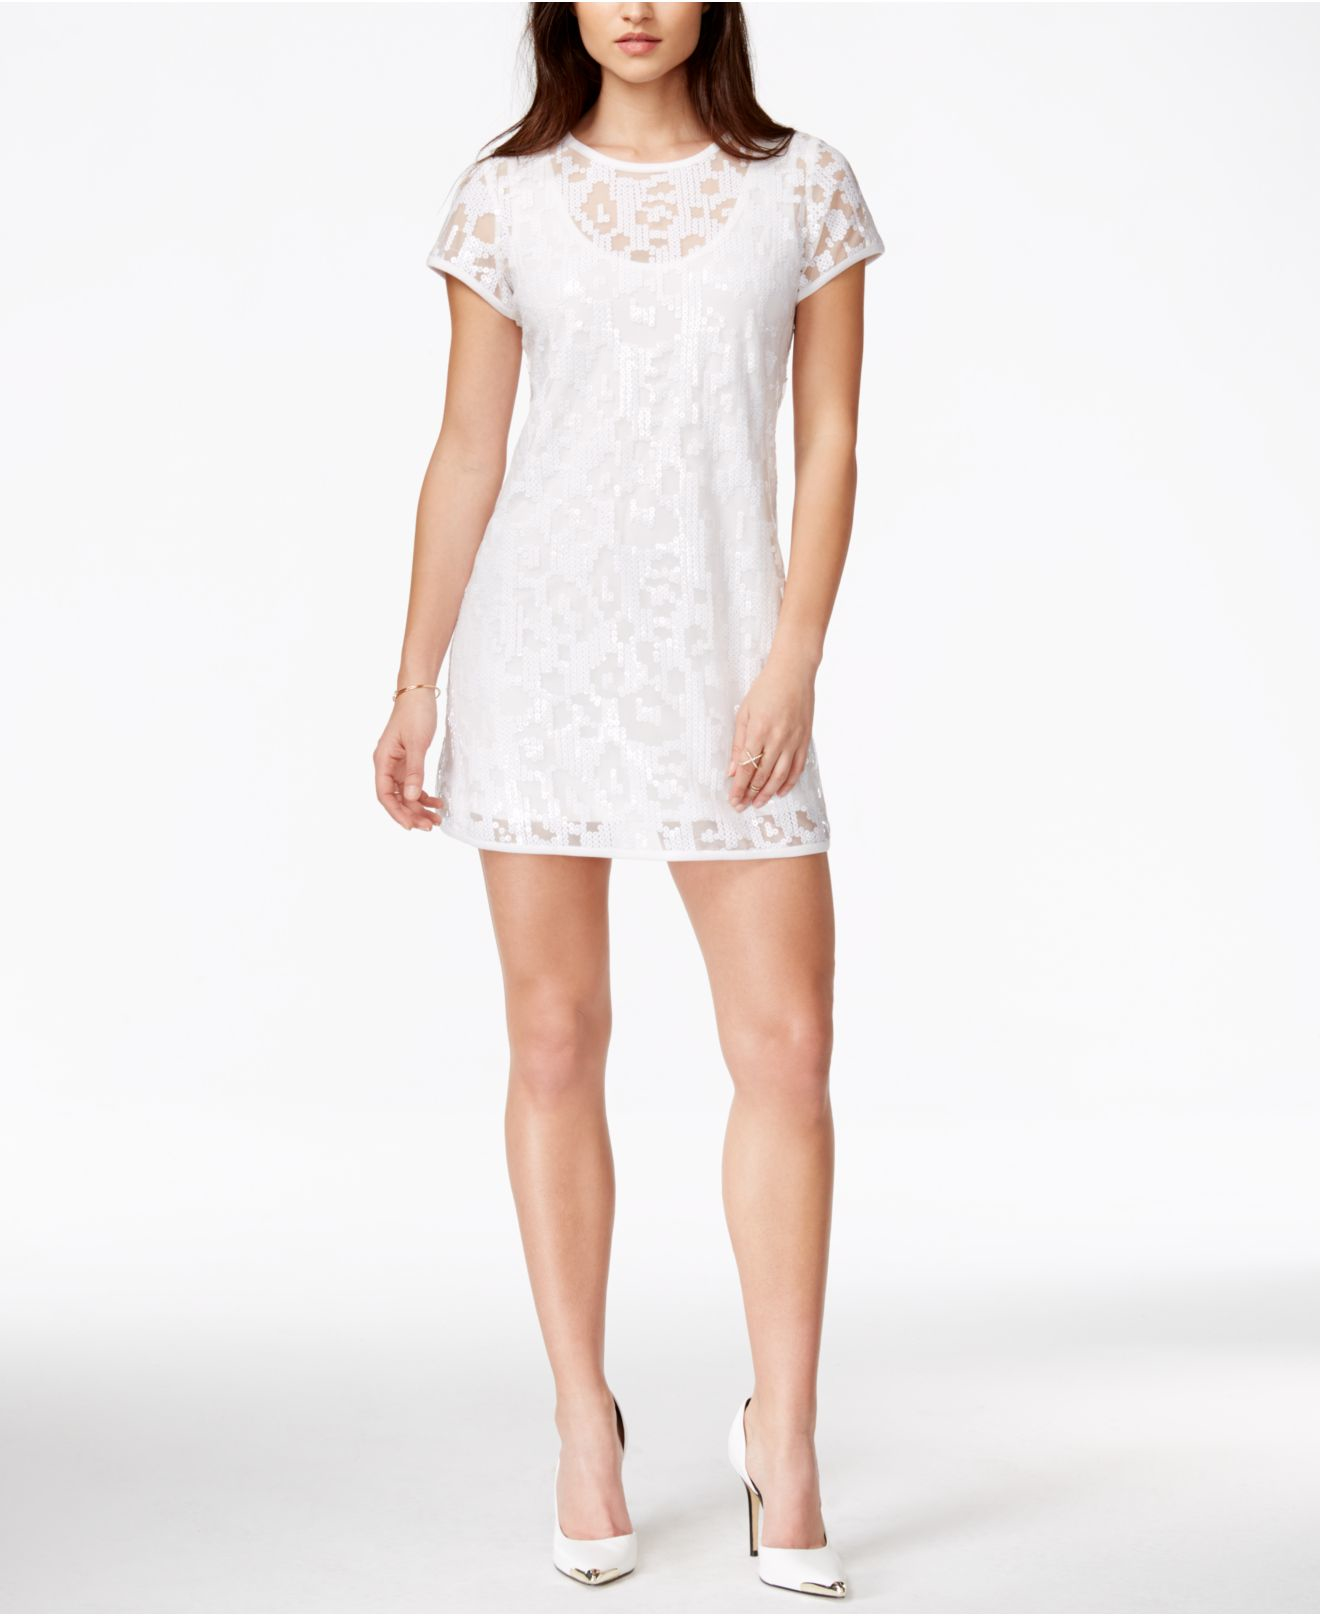 Guess Leopard Sequin Dress in White - Lyst